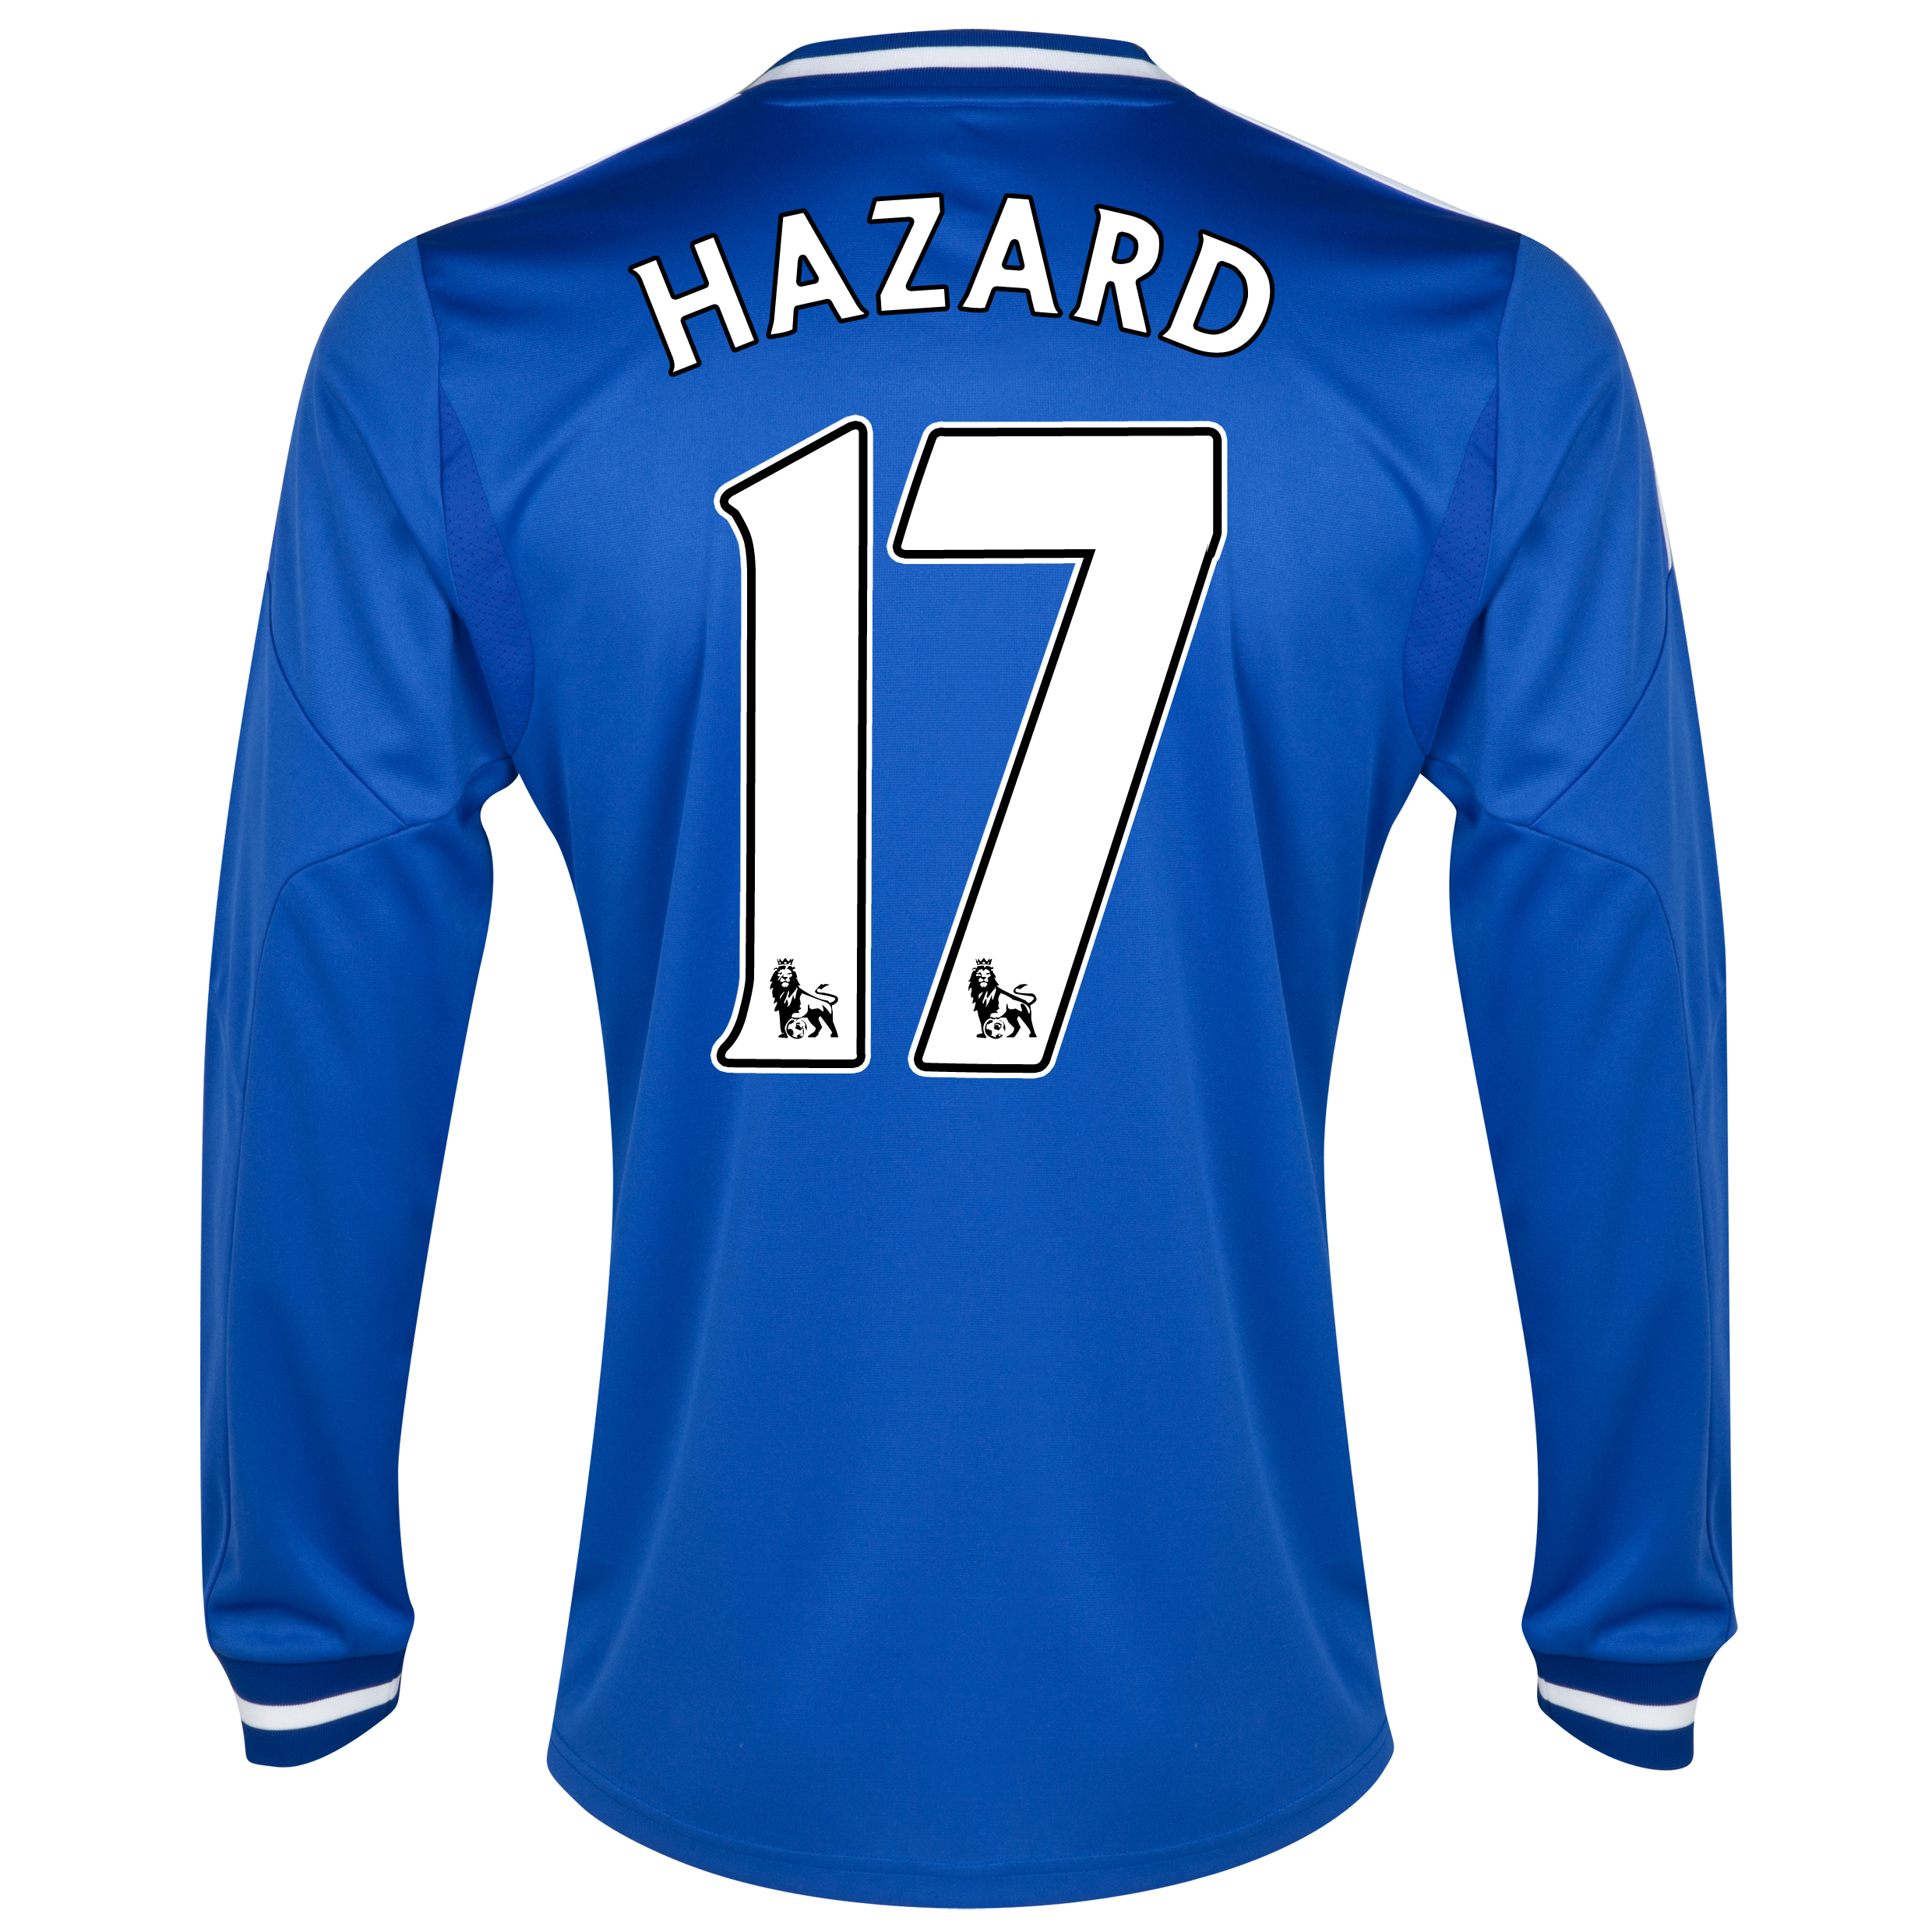 Chelsea Home Shirt 2013/14 - Long Sleeve - Kids with Hazard 17 printing